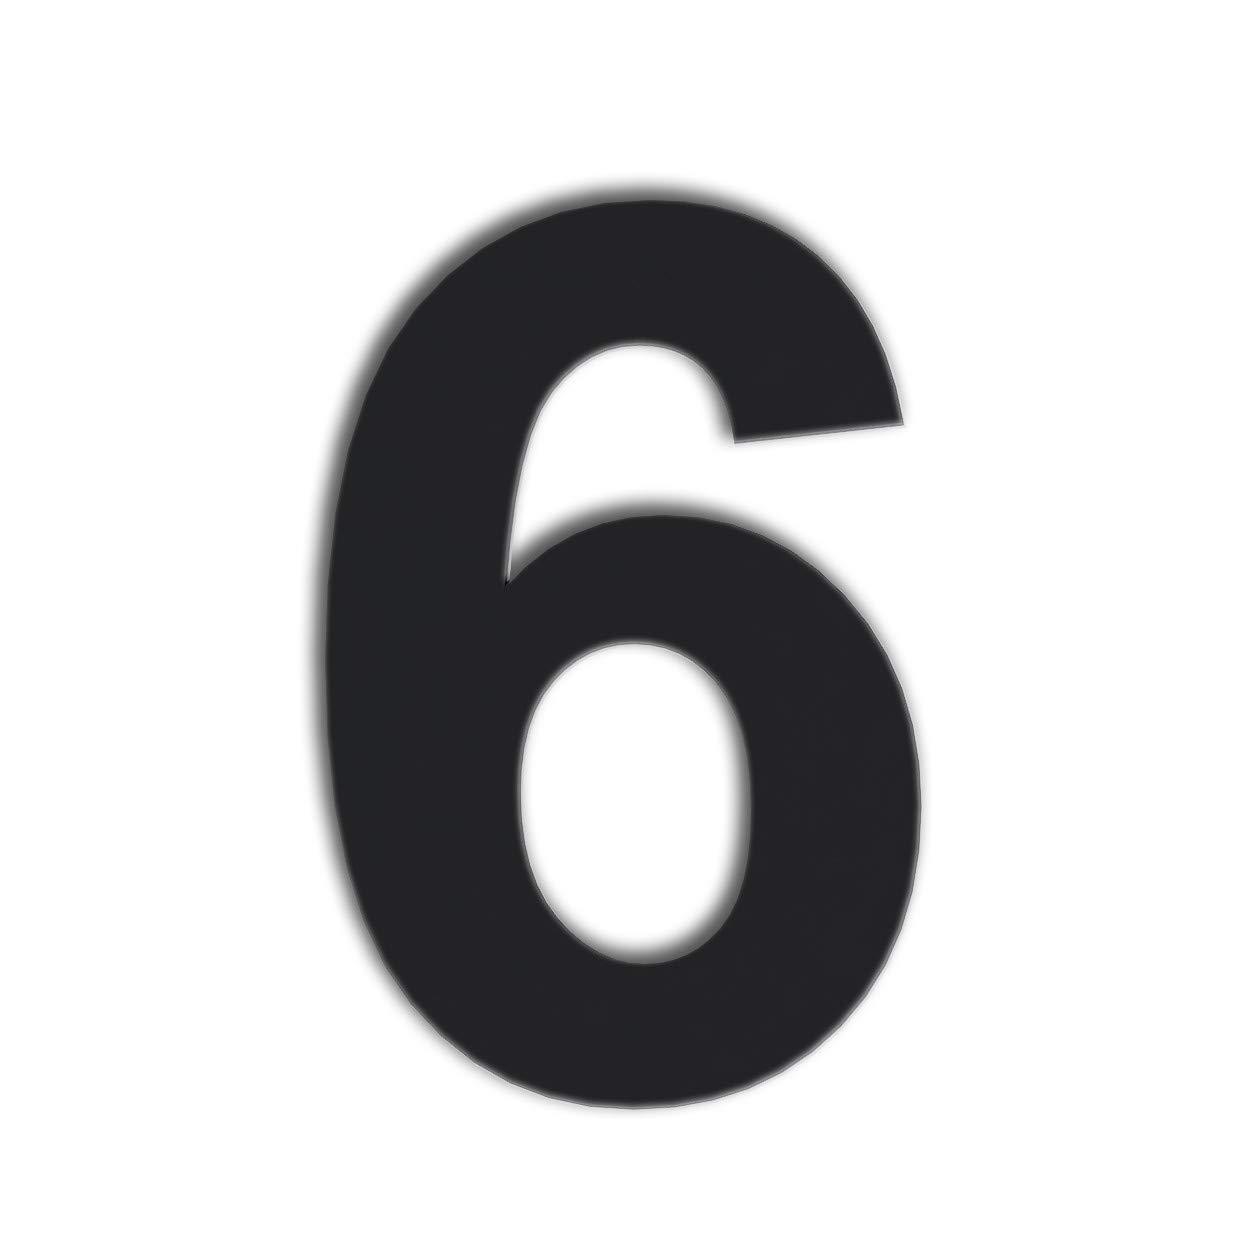 QT Modern House Number - Extra Large 10 Inch Black - Stainless Steel (Number 6 Six / 9 Nine), Floating Appearance, Easy to Install and Made of Solid 304